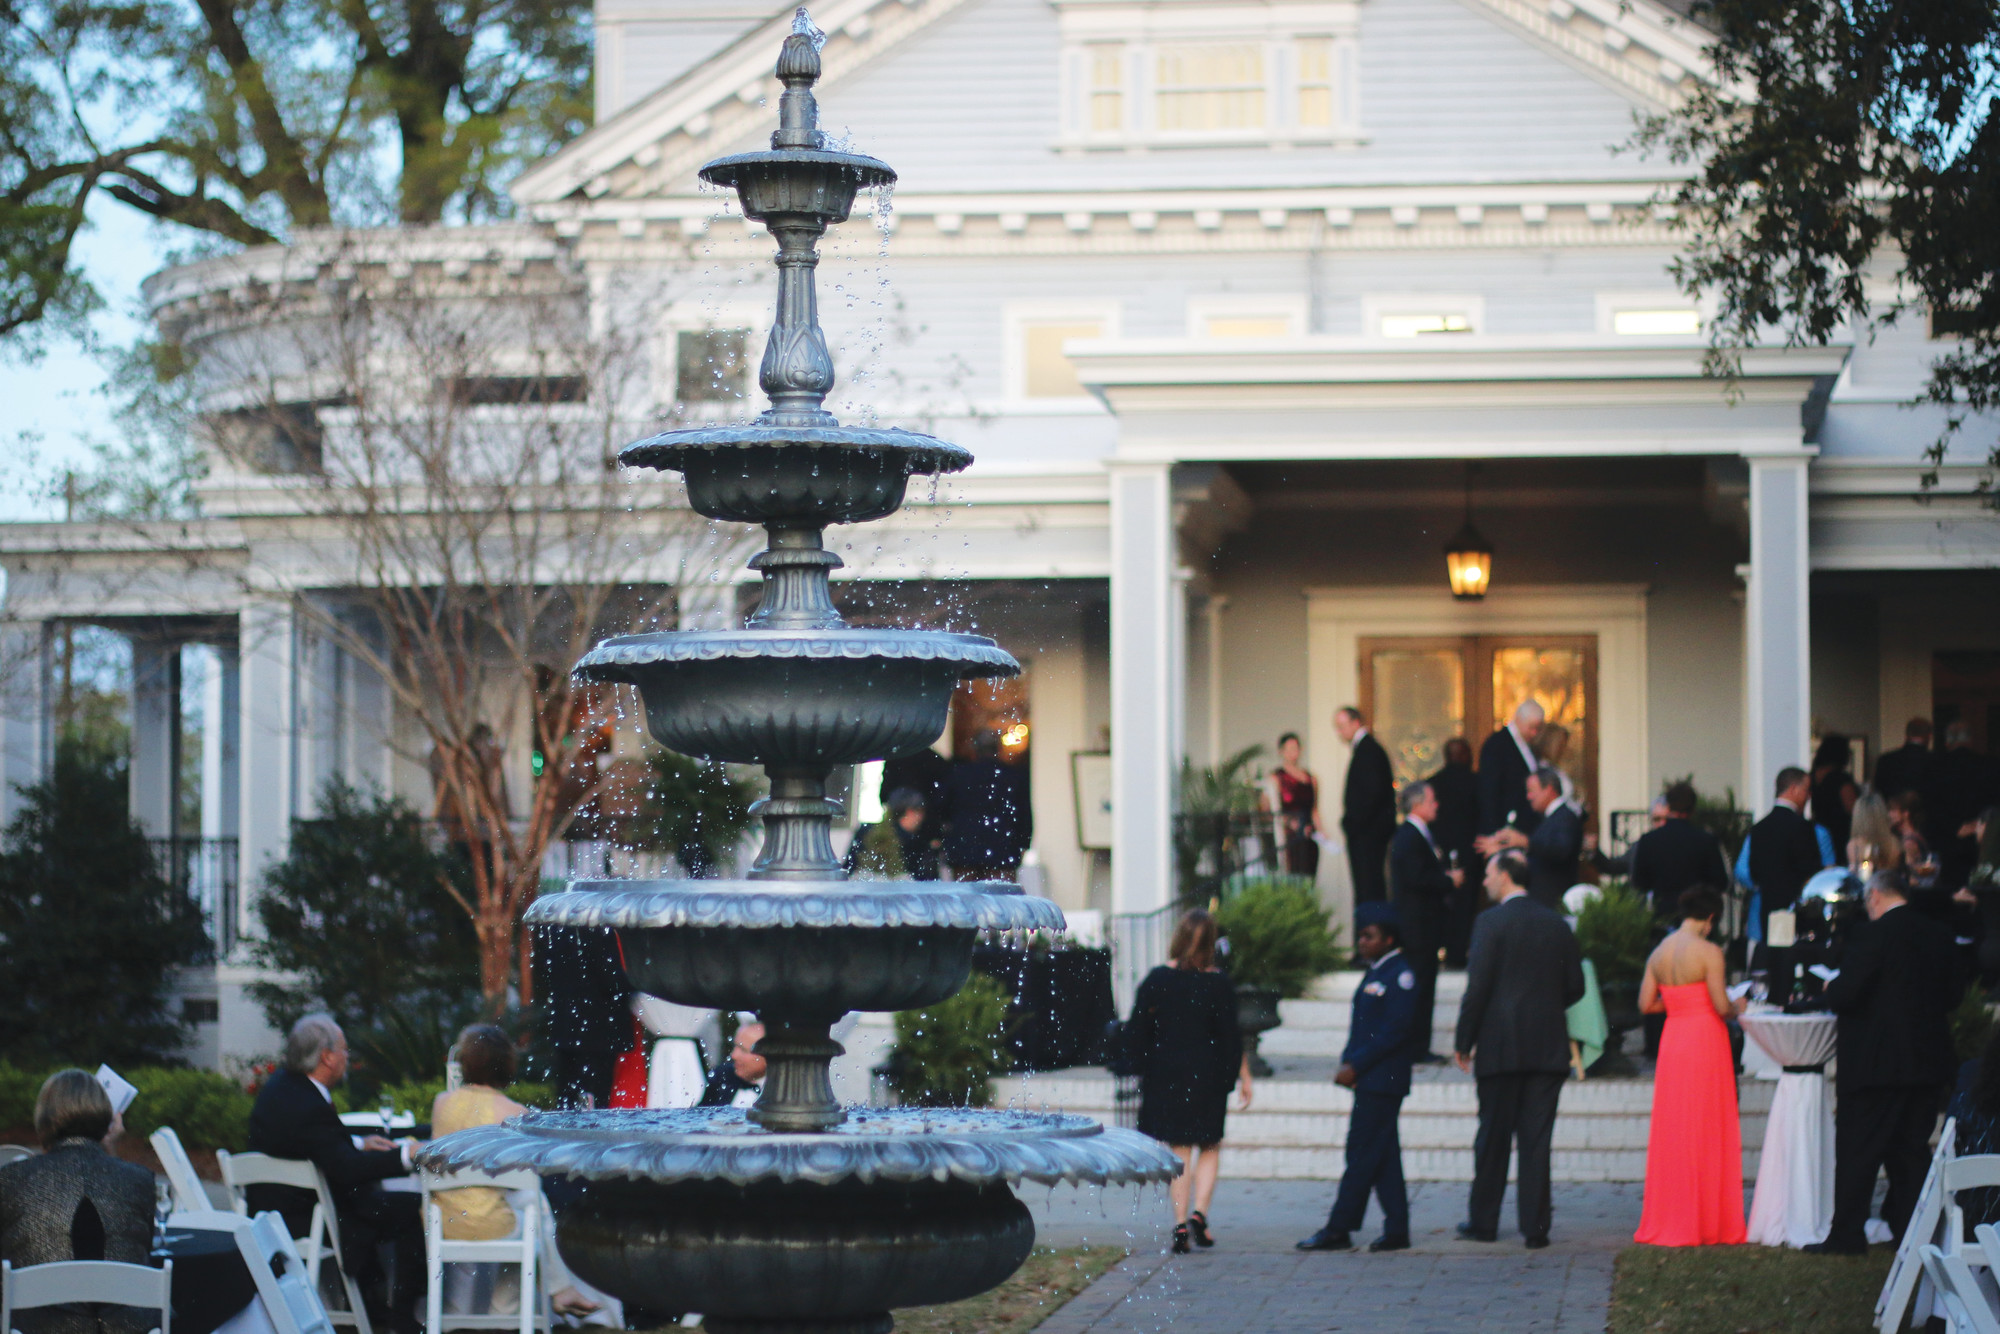 The Sumter Disabilities Benefit Gala will be held for the fourth year March 29 from 6 to 9:30 p.m. at The O'Donnell House. It will feature dinner, drinks and a silent auction to benefit the developmentally disabled.